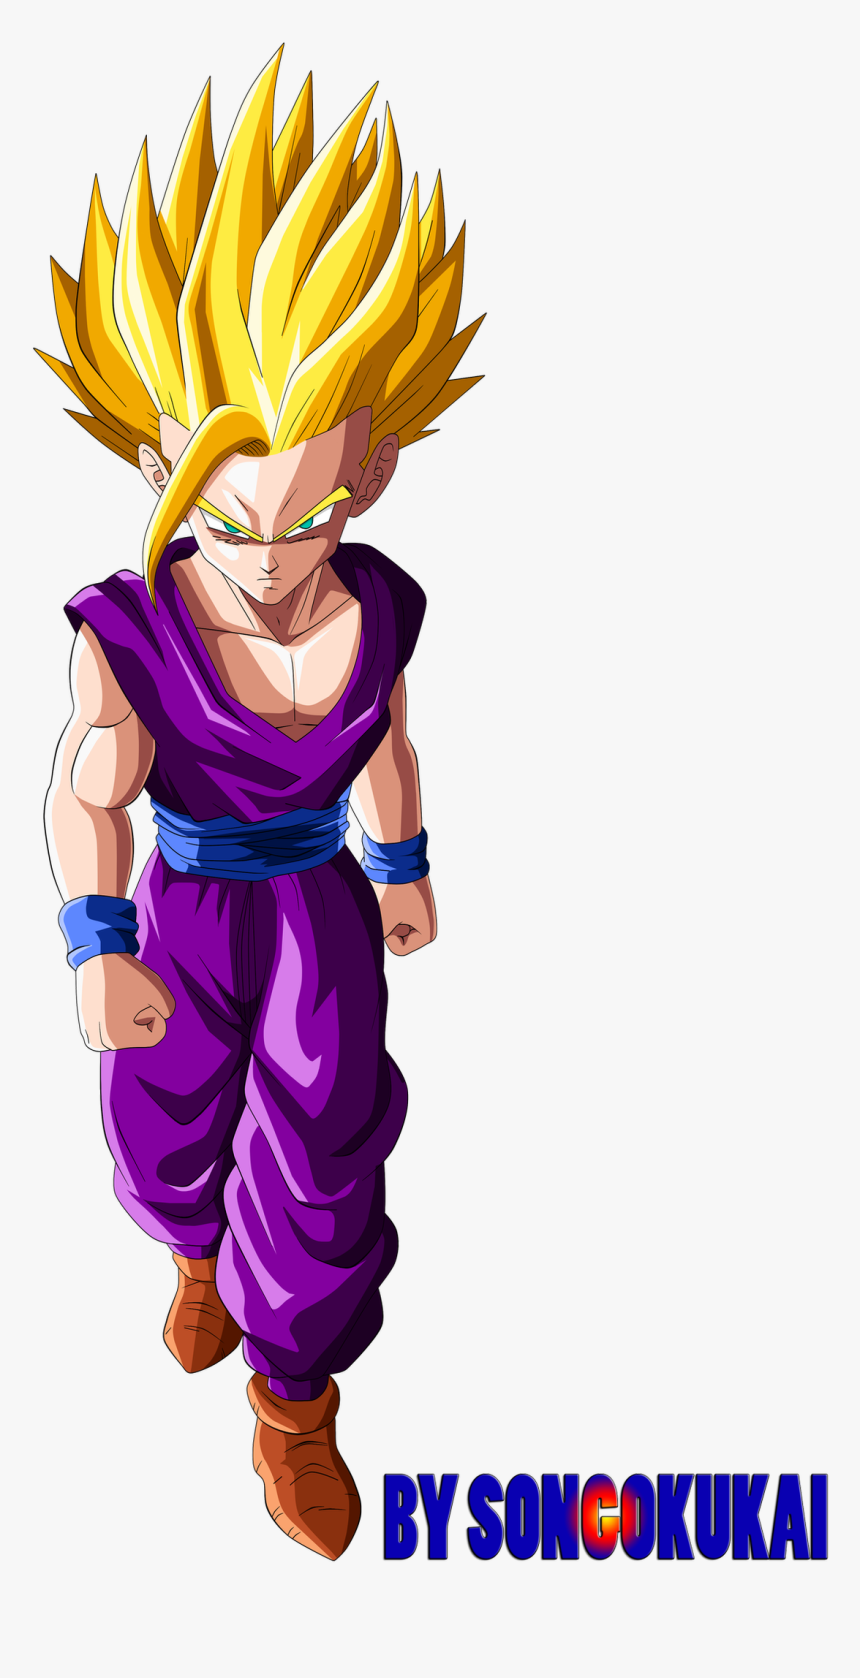 Ssj2 Teen Gohan Transparent Hd Png Download Transparent Png Image Pngitem This video is a chill nerf video compared to the other ones. ssj2 teen gohan transparent hd png